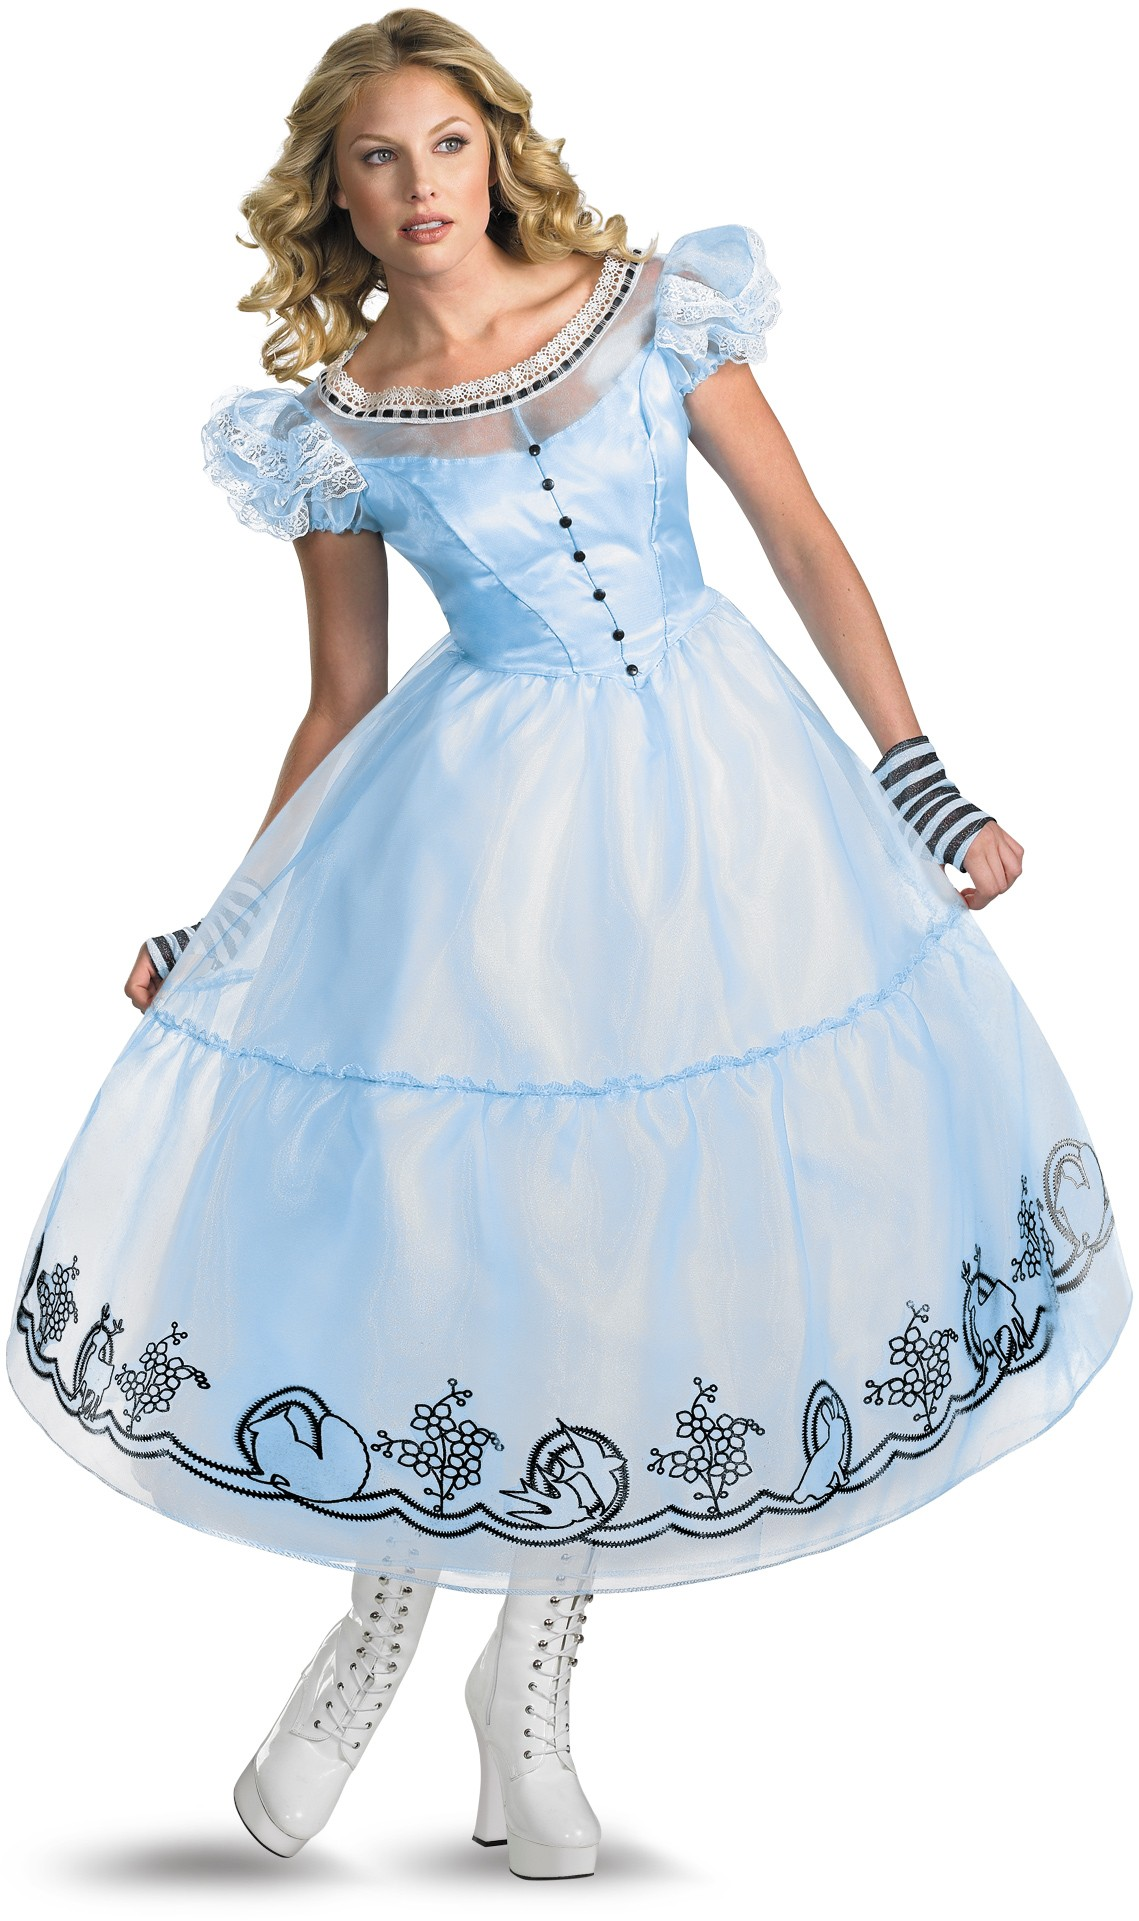 Alice In Wonderland Movie - Deluxe Alice Adult Womenu0026#39;s Costume | Costumes.com.au